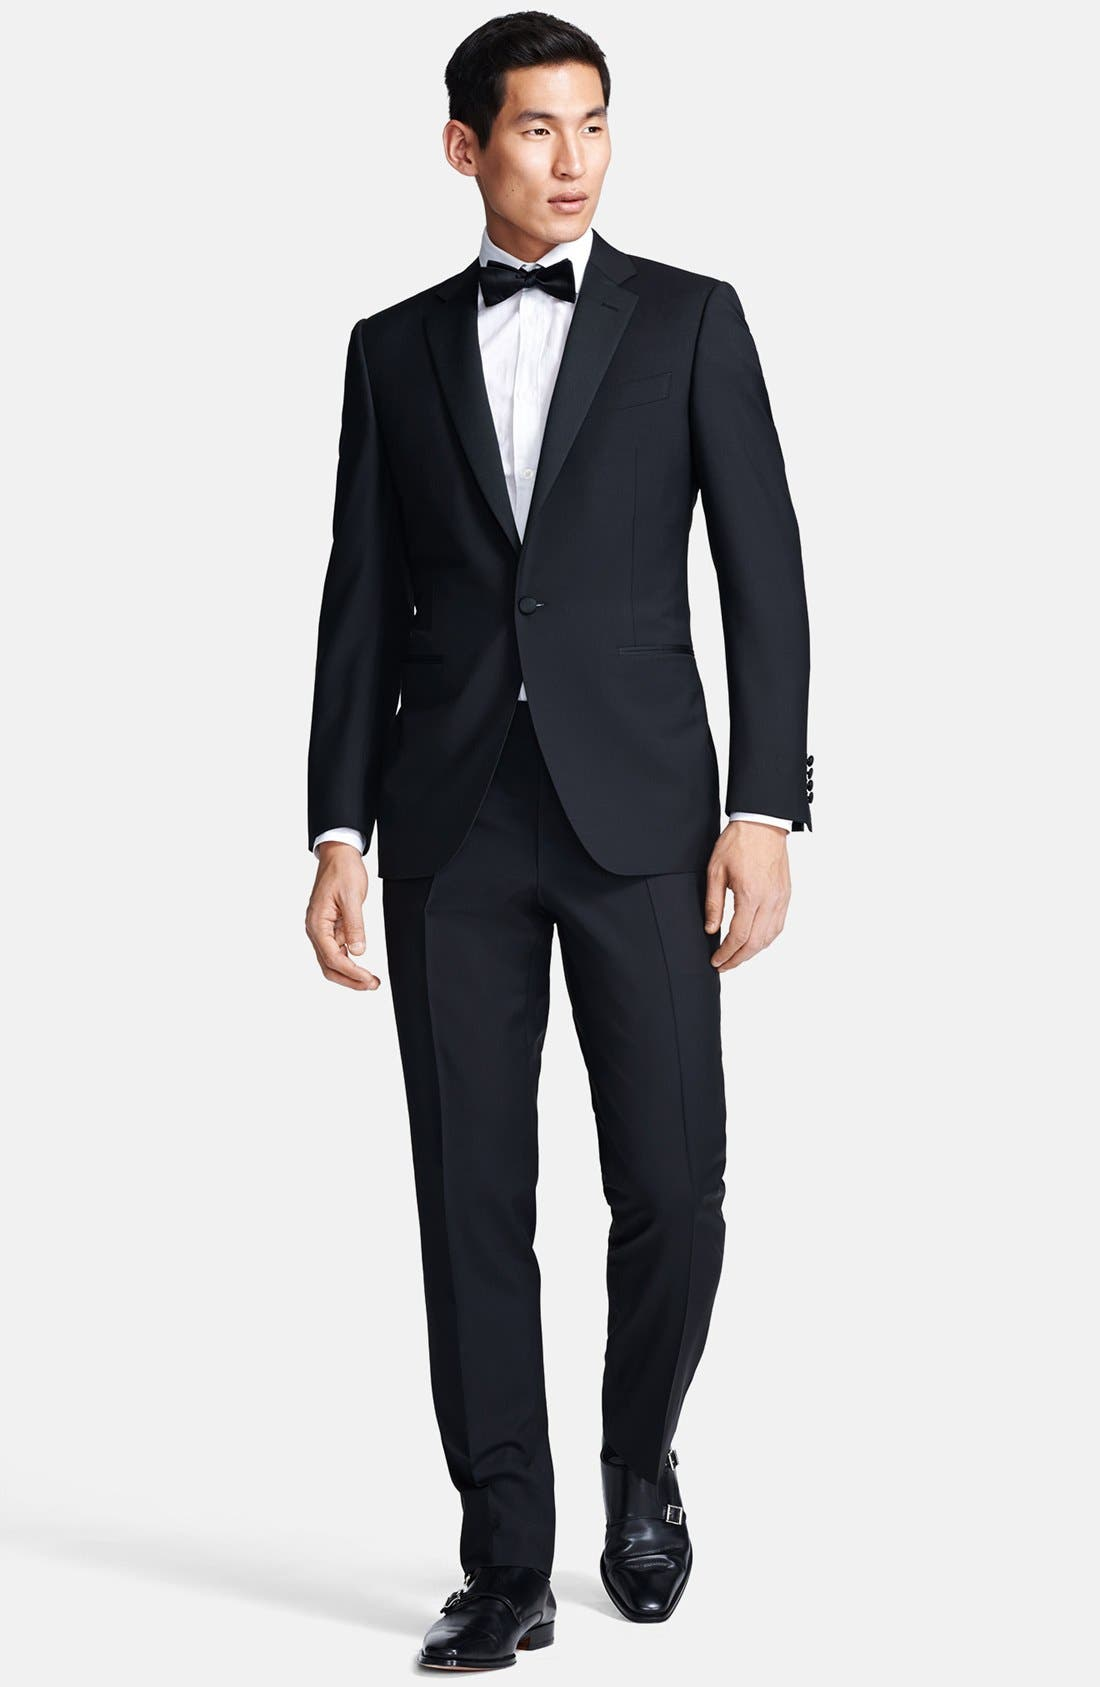 Alternate Image 1 Selected - Canali Trim Fit Wool/Mohair Tuxedo